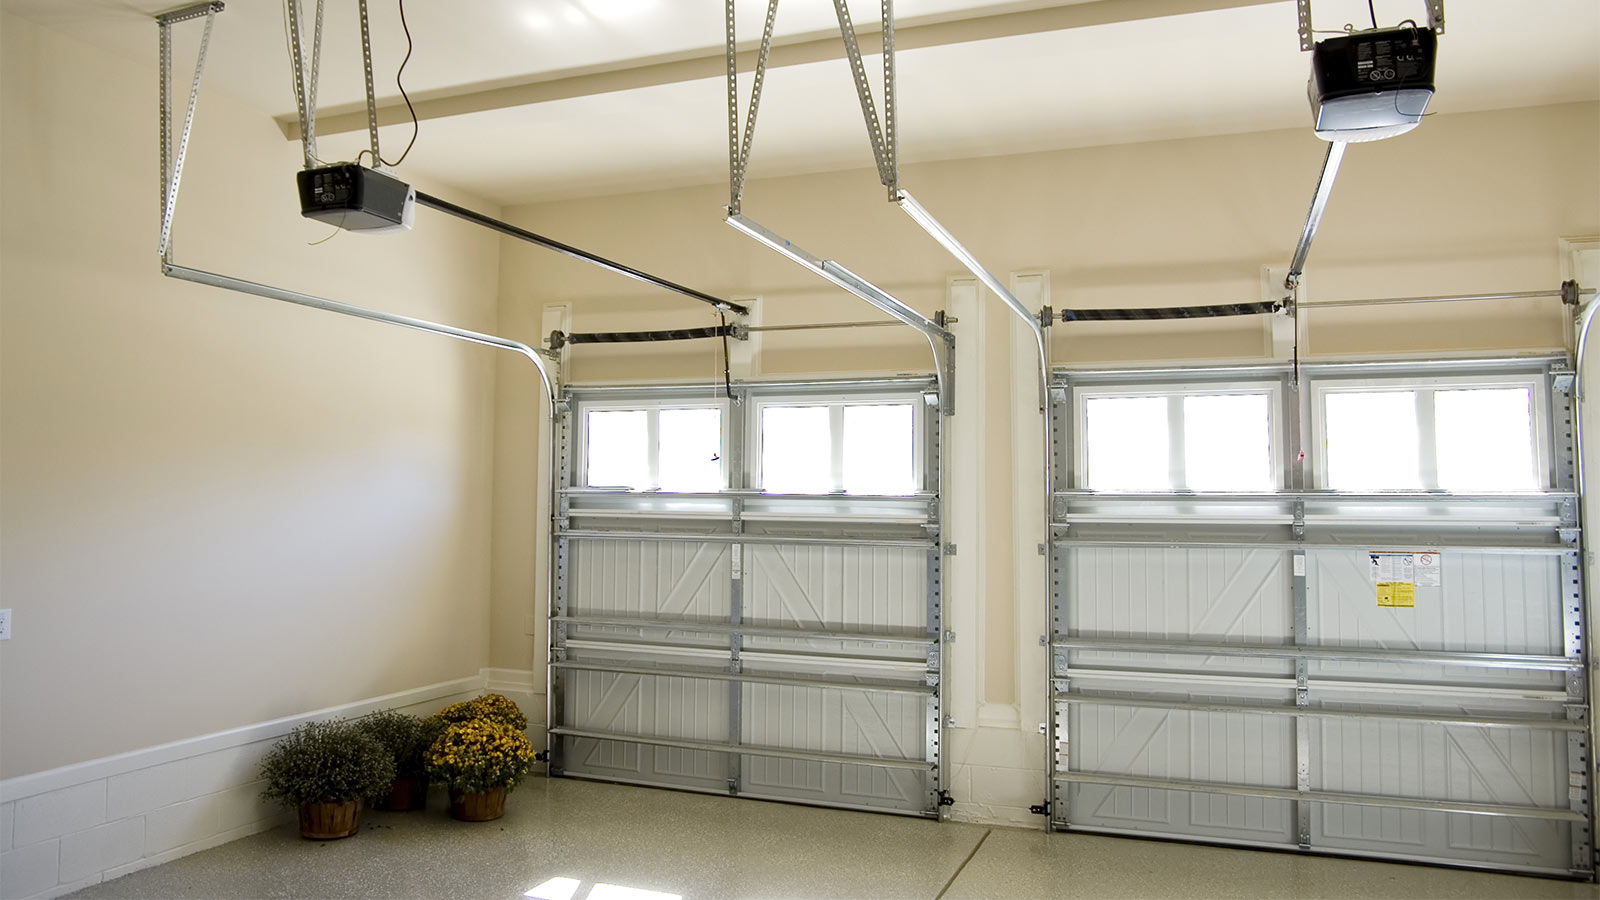 Sectional Garage Doors from Window Roller Shutters Rayleigh suppliers.